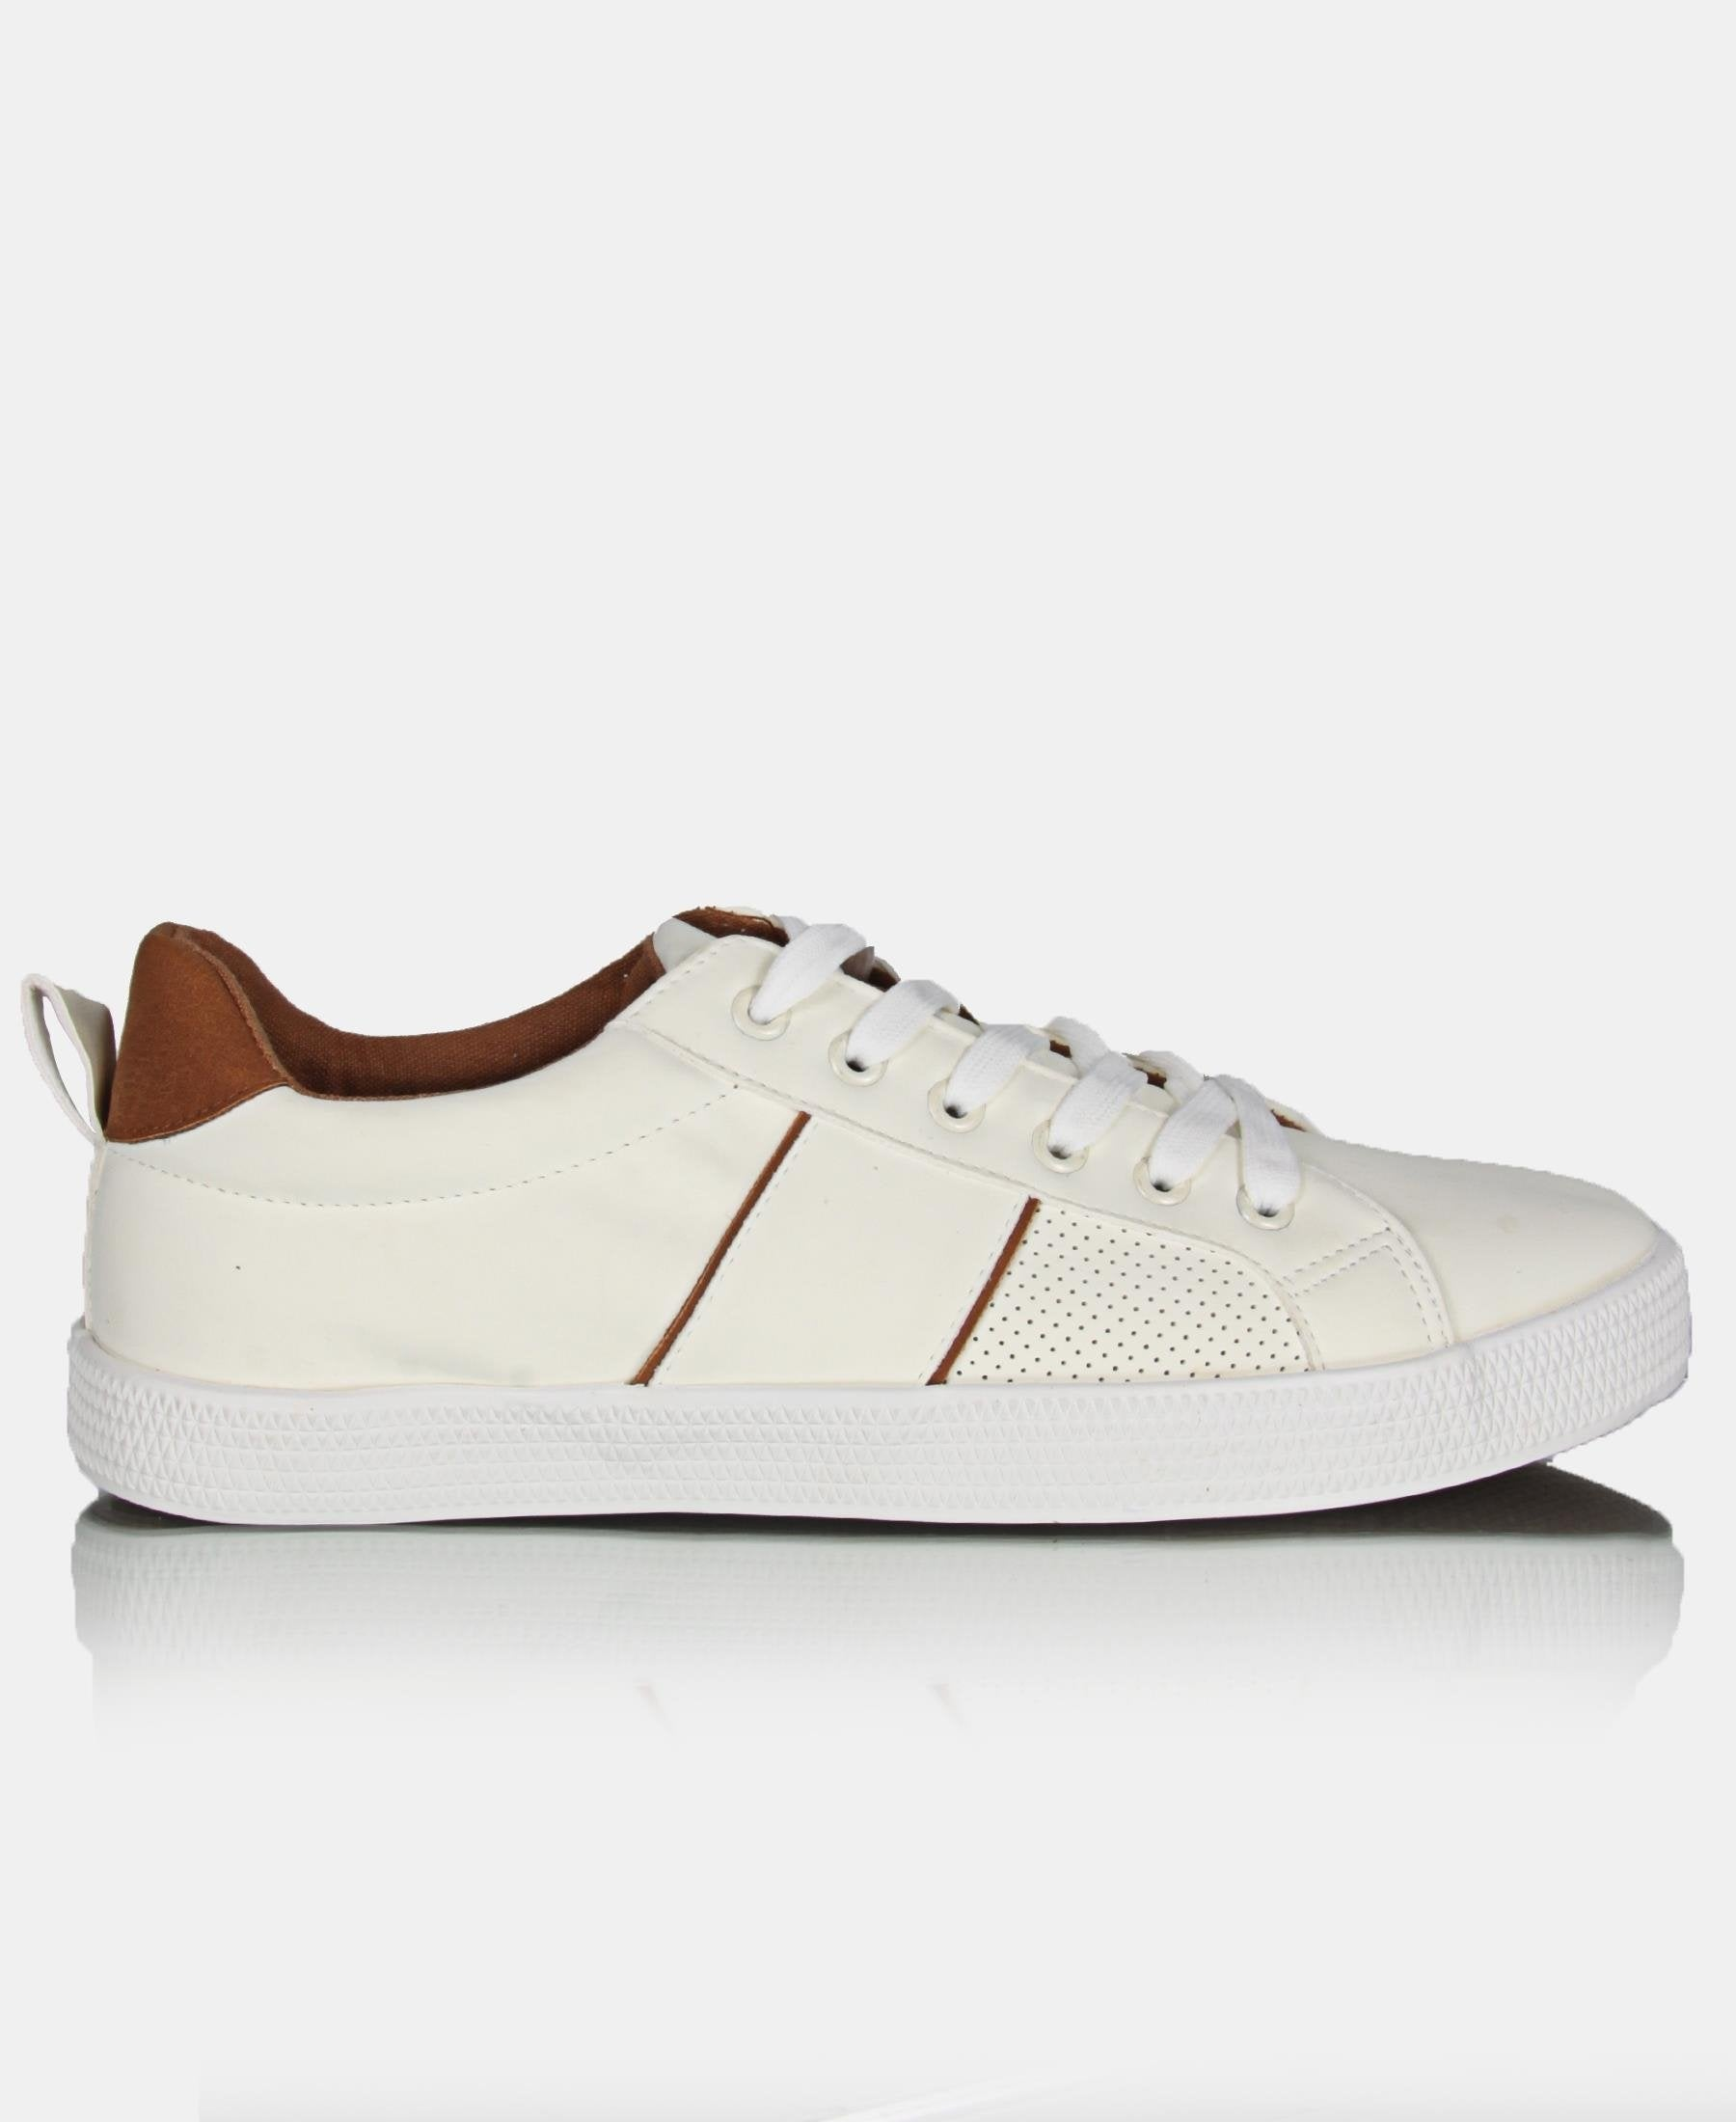 Men's Light Stripe Update Sneakers - White